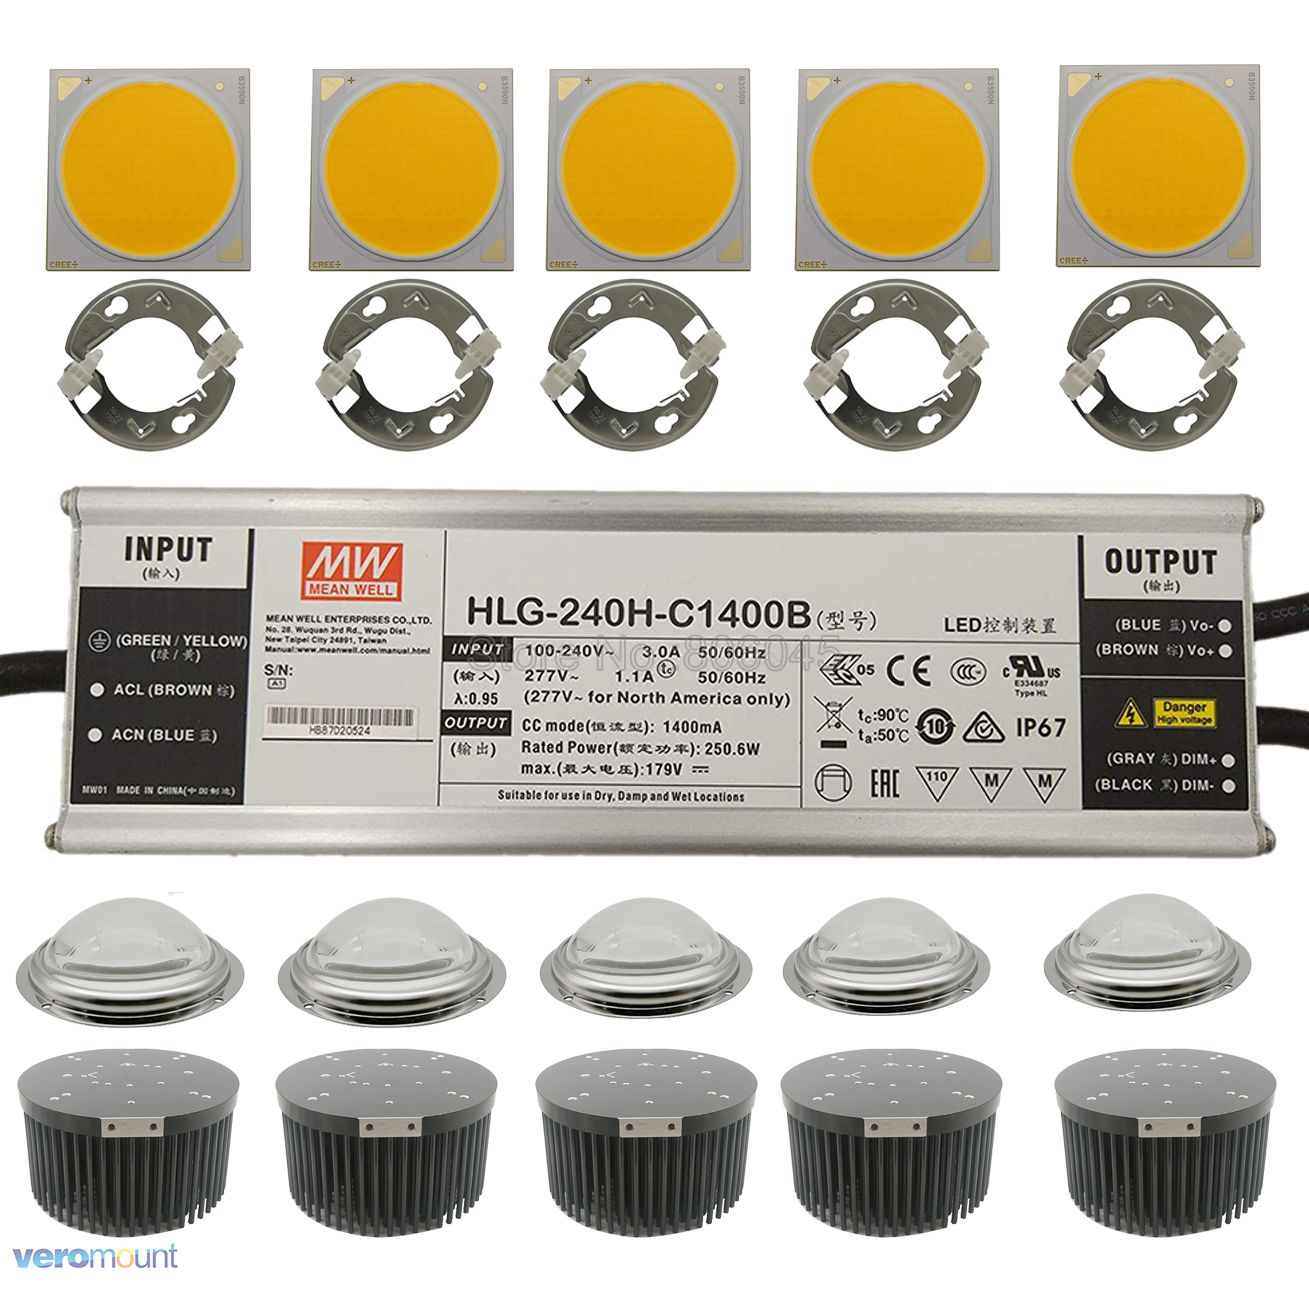 250W CREE COB CXB3590 LED Grow Llight 5pc Kit With Meanwell Dimmable Led Driver HLG-240H-C1400B 133mm Heatsink Lens Ideal Holder